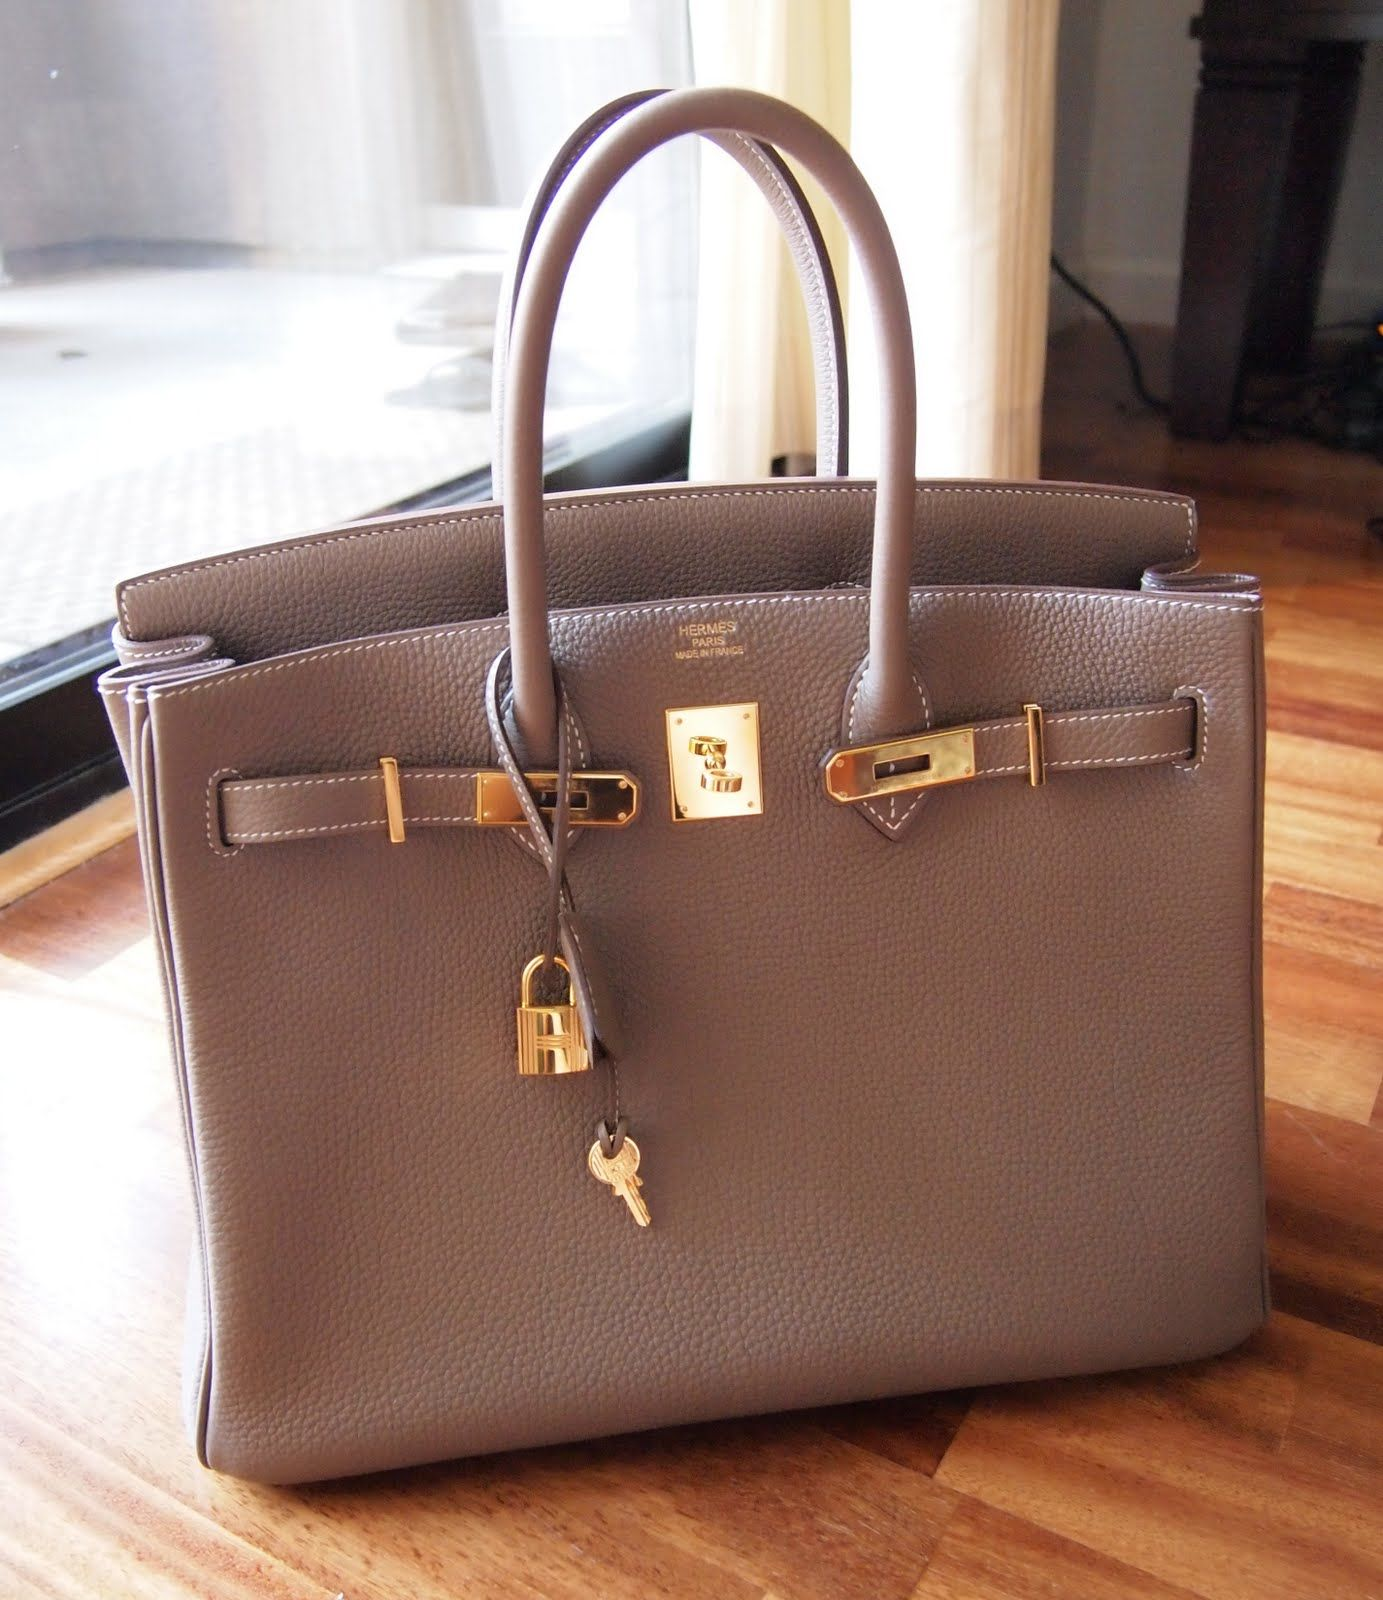 Birkin Inspired Handbags Your Ultimate Guide To Hermes Bag Dupes Replica